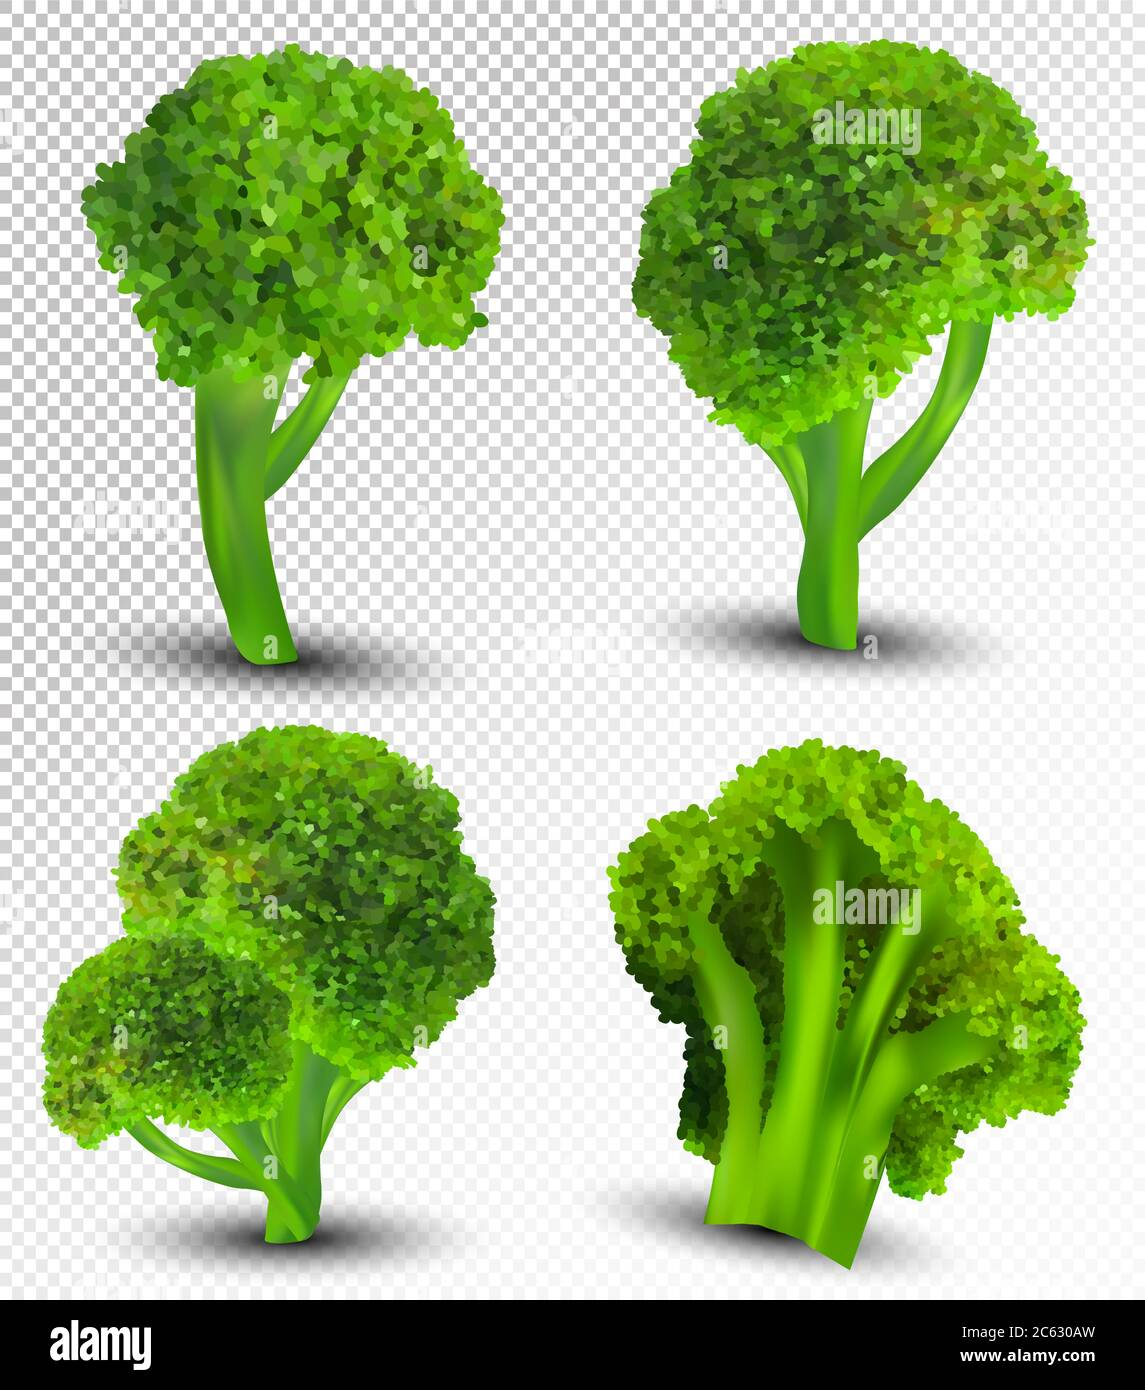 3d realistic broccoli collection fresh vegetables broccoli cabbage on transparent background nature product detailed vector illustration stock vector image art alamy https www alamy com 3d realistic broccoli collection fresh vegetables broccoli cabbage on transparent background nature product detailed vector illustration image365171825 html